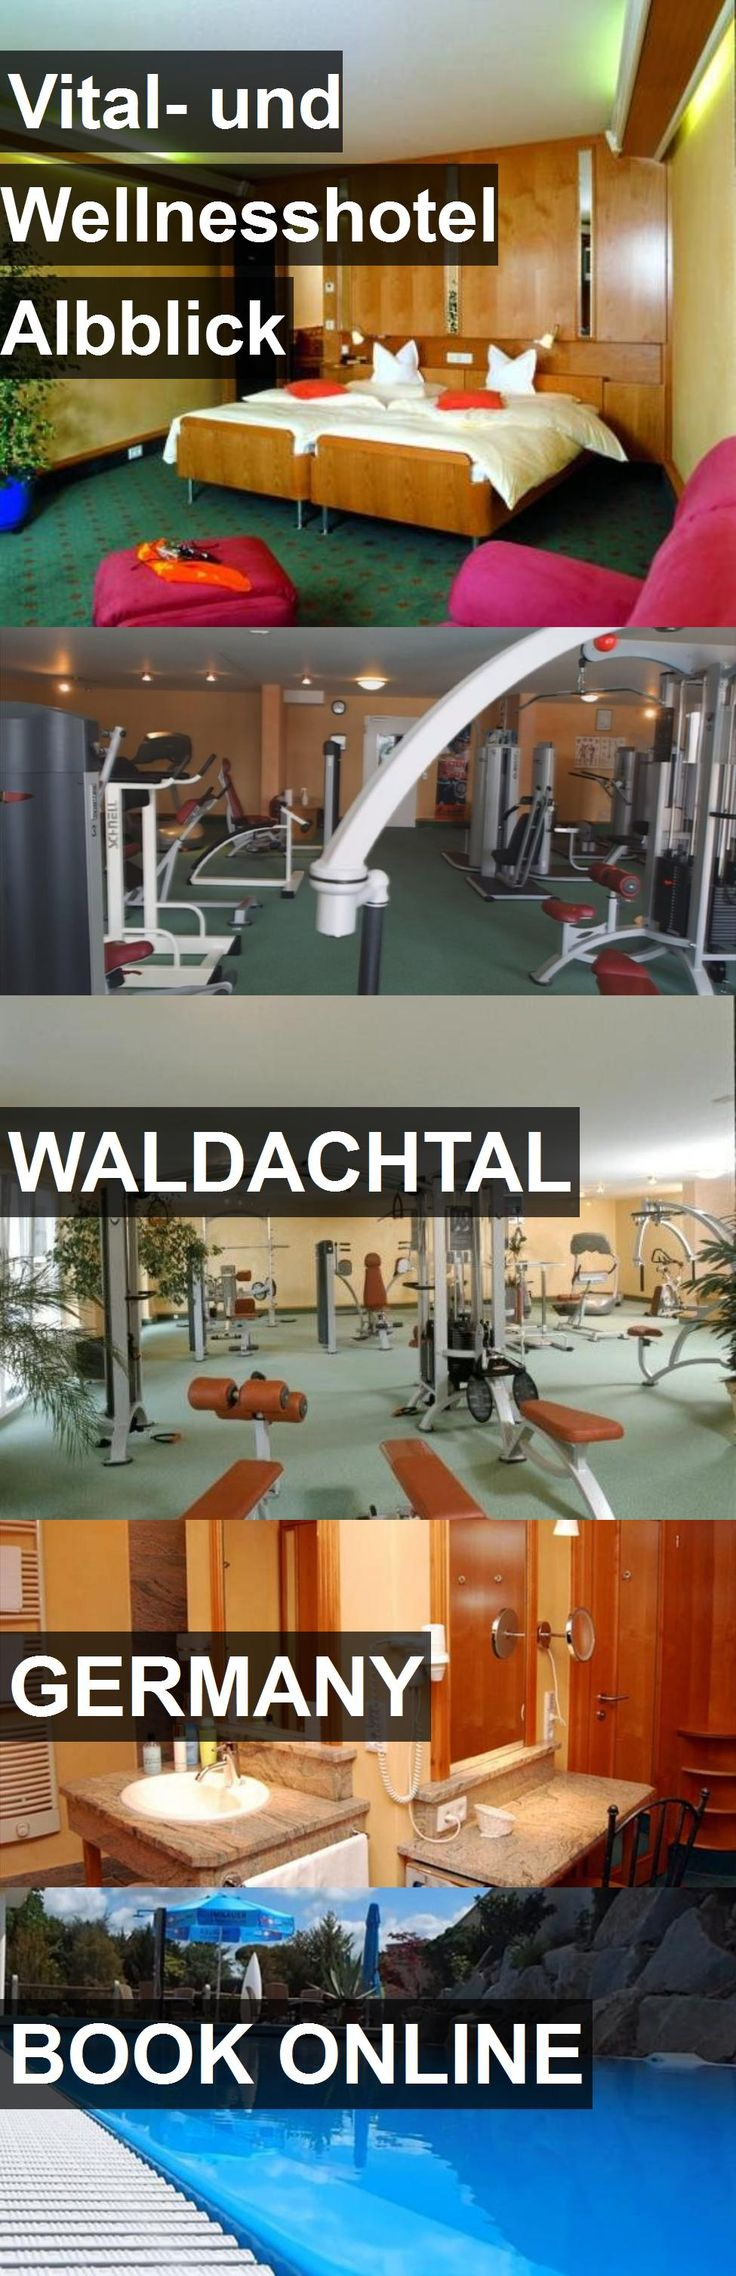 Hotel Vital- und Wellnesshotel Albblick in Waldachtal, Germany. For more information, photos, reviews and best prices please follow the link. #Germany #Waldachtal #Vital-undWellnesshotelAlbblick #hotel #travel #vacation